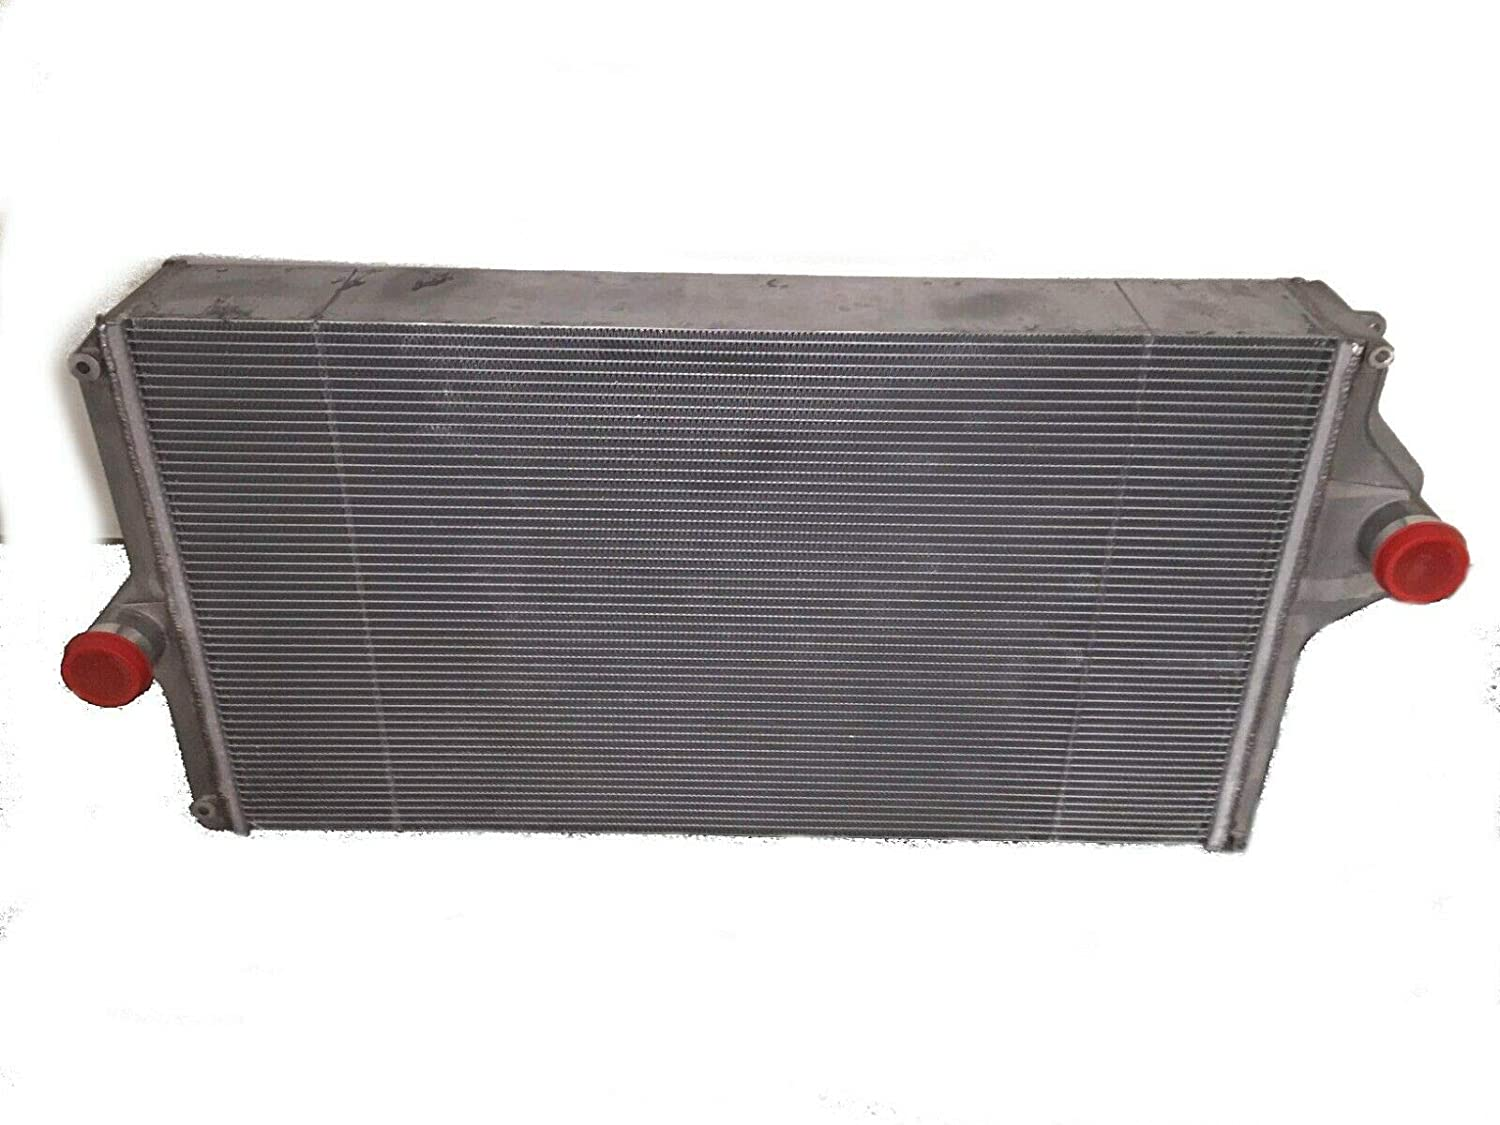 AC Radiator fits John Deere 8000 Series and 4940 Sprayer replaces RE330645 QAC